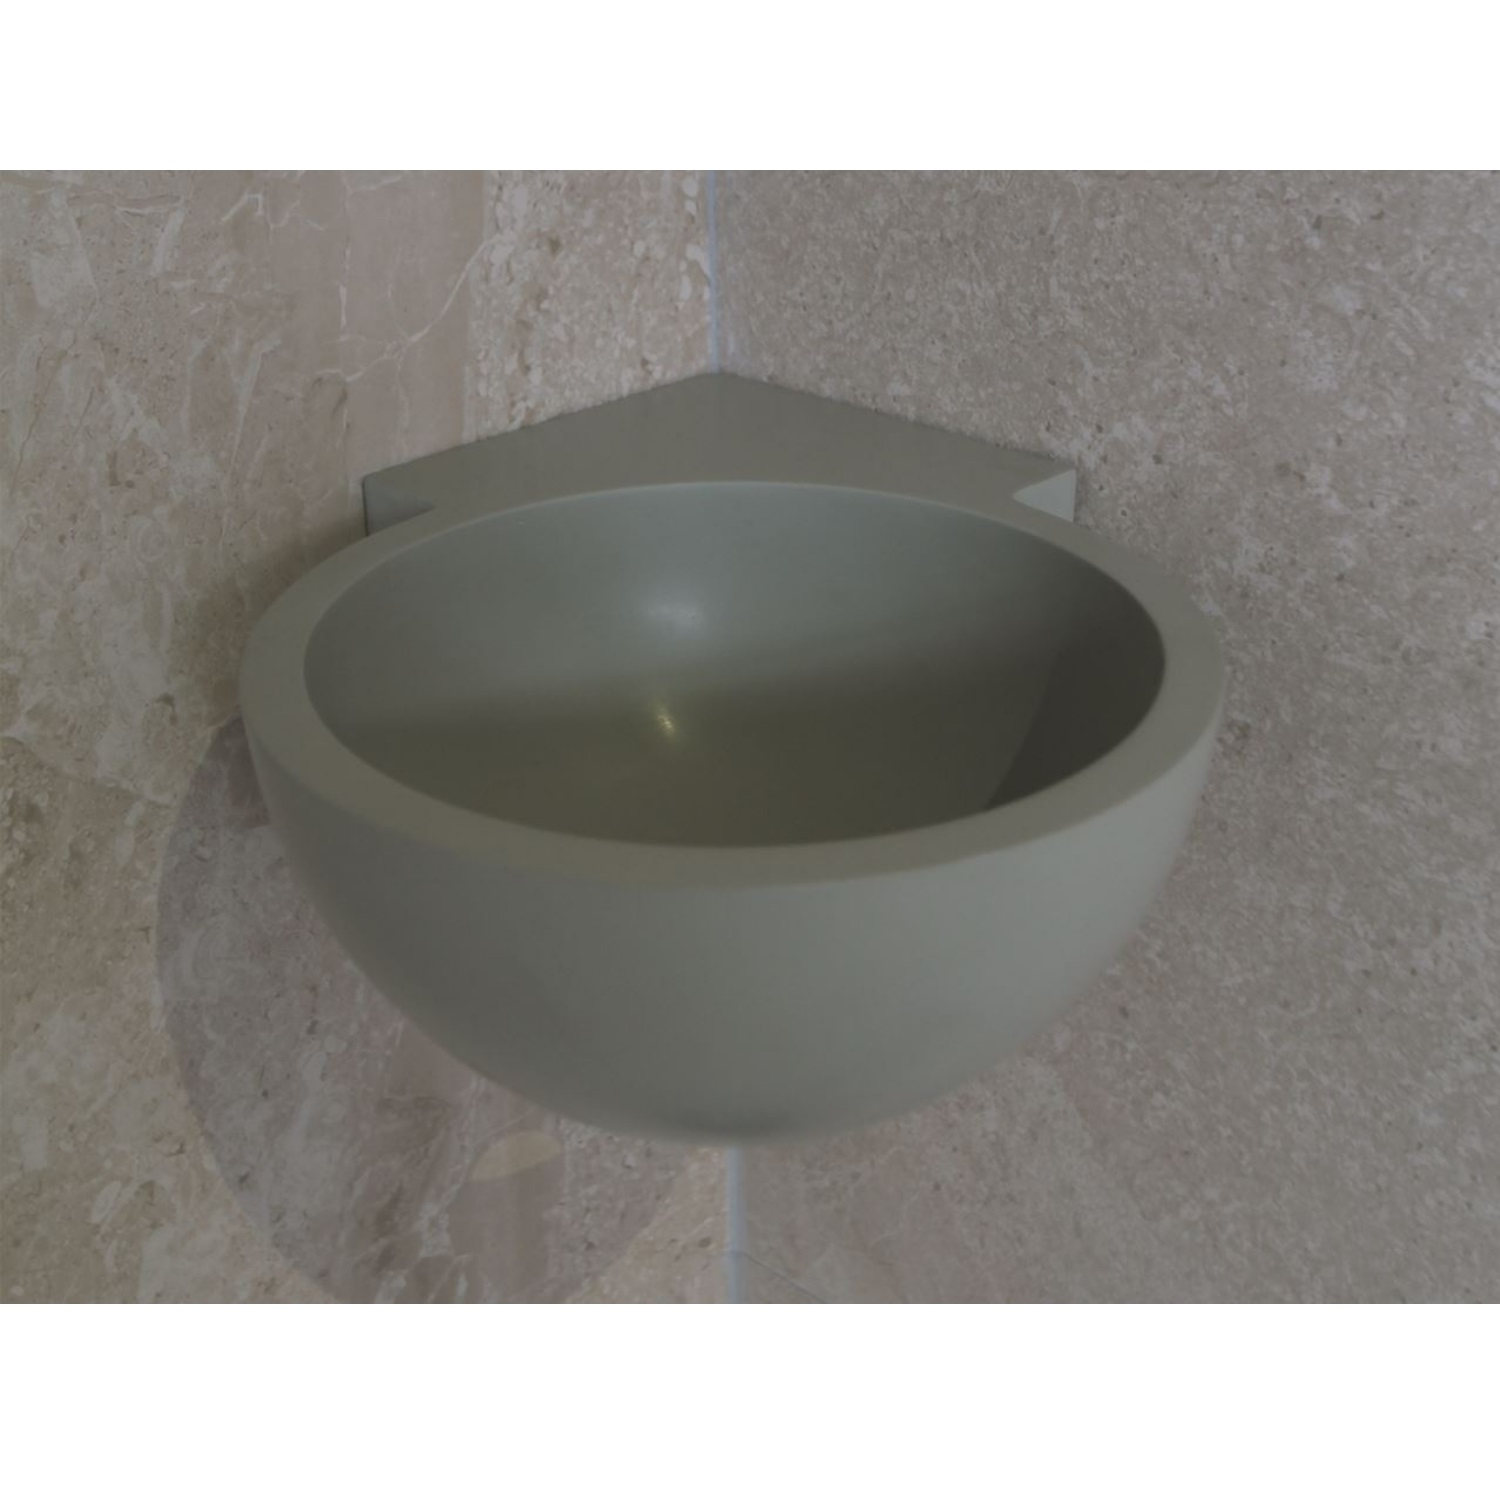 Hoekfontein Luca Sanitair Rond 28x28x12cm Solid Surface Camoscio Grijs